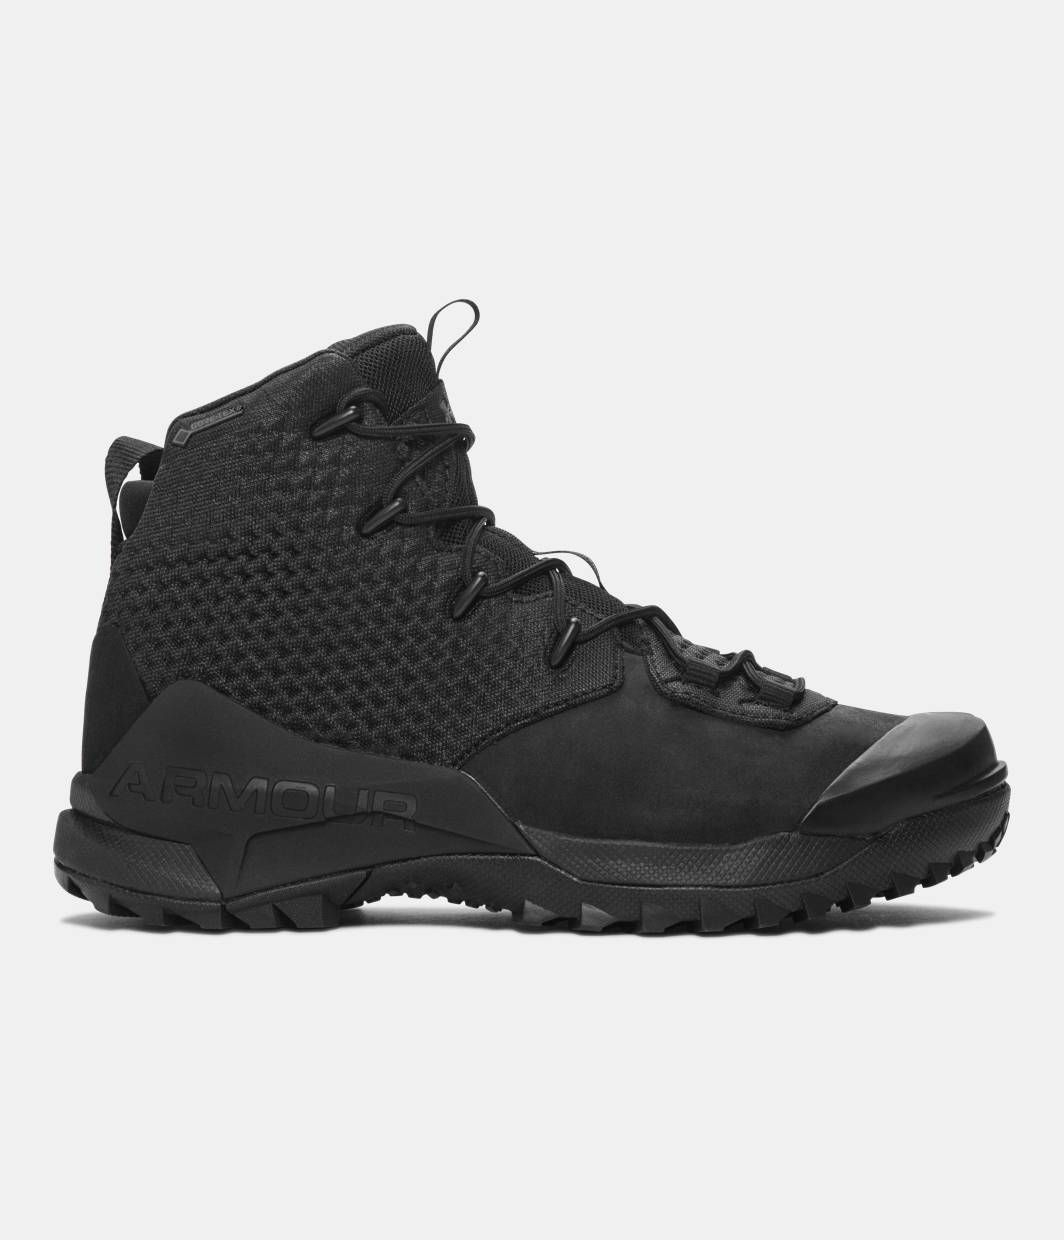 Under Armour UA Infil Gore Tex Hiking Boots | Schuhe